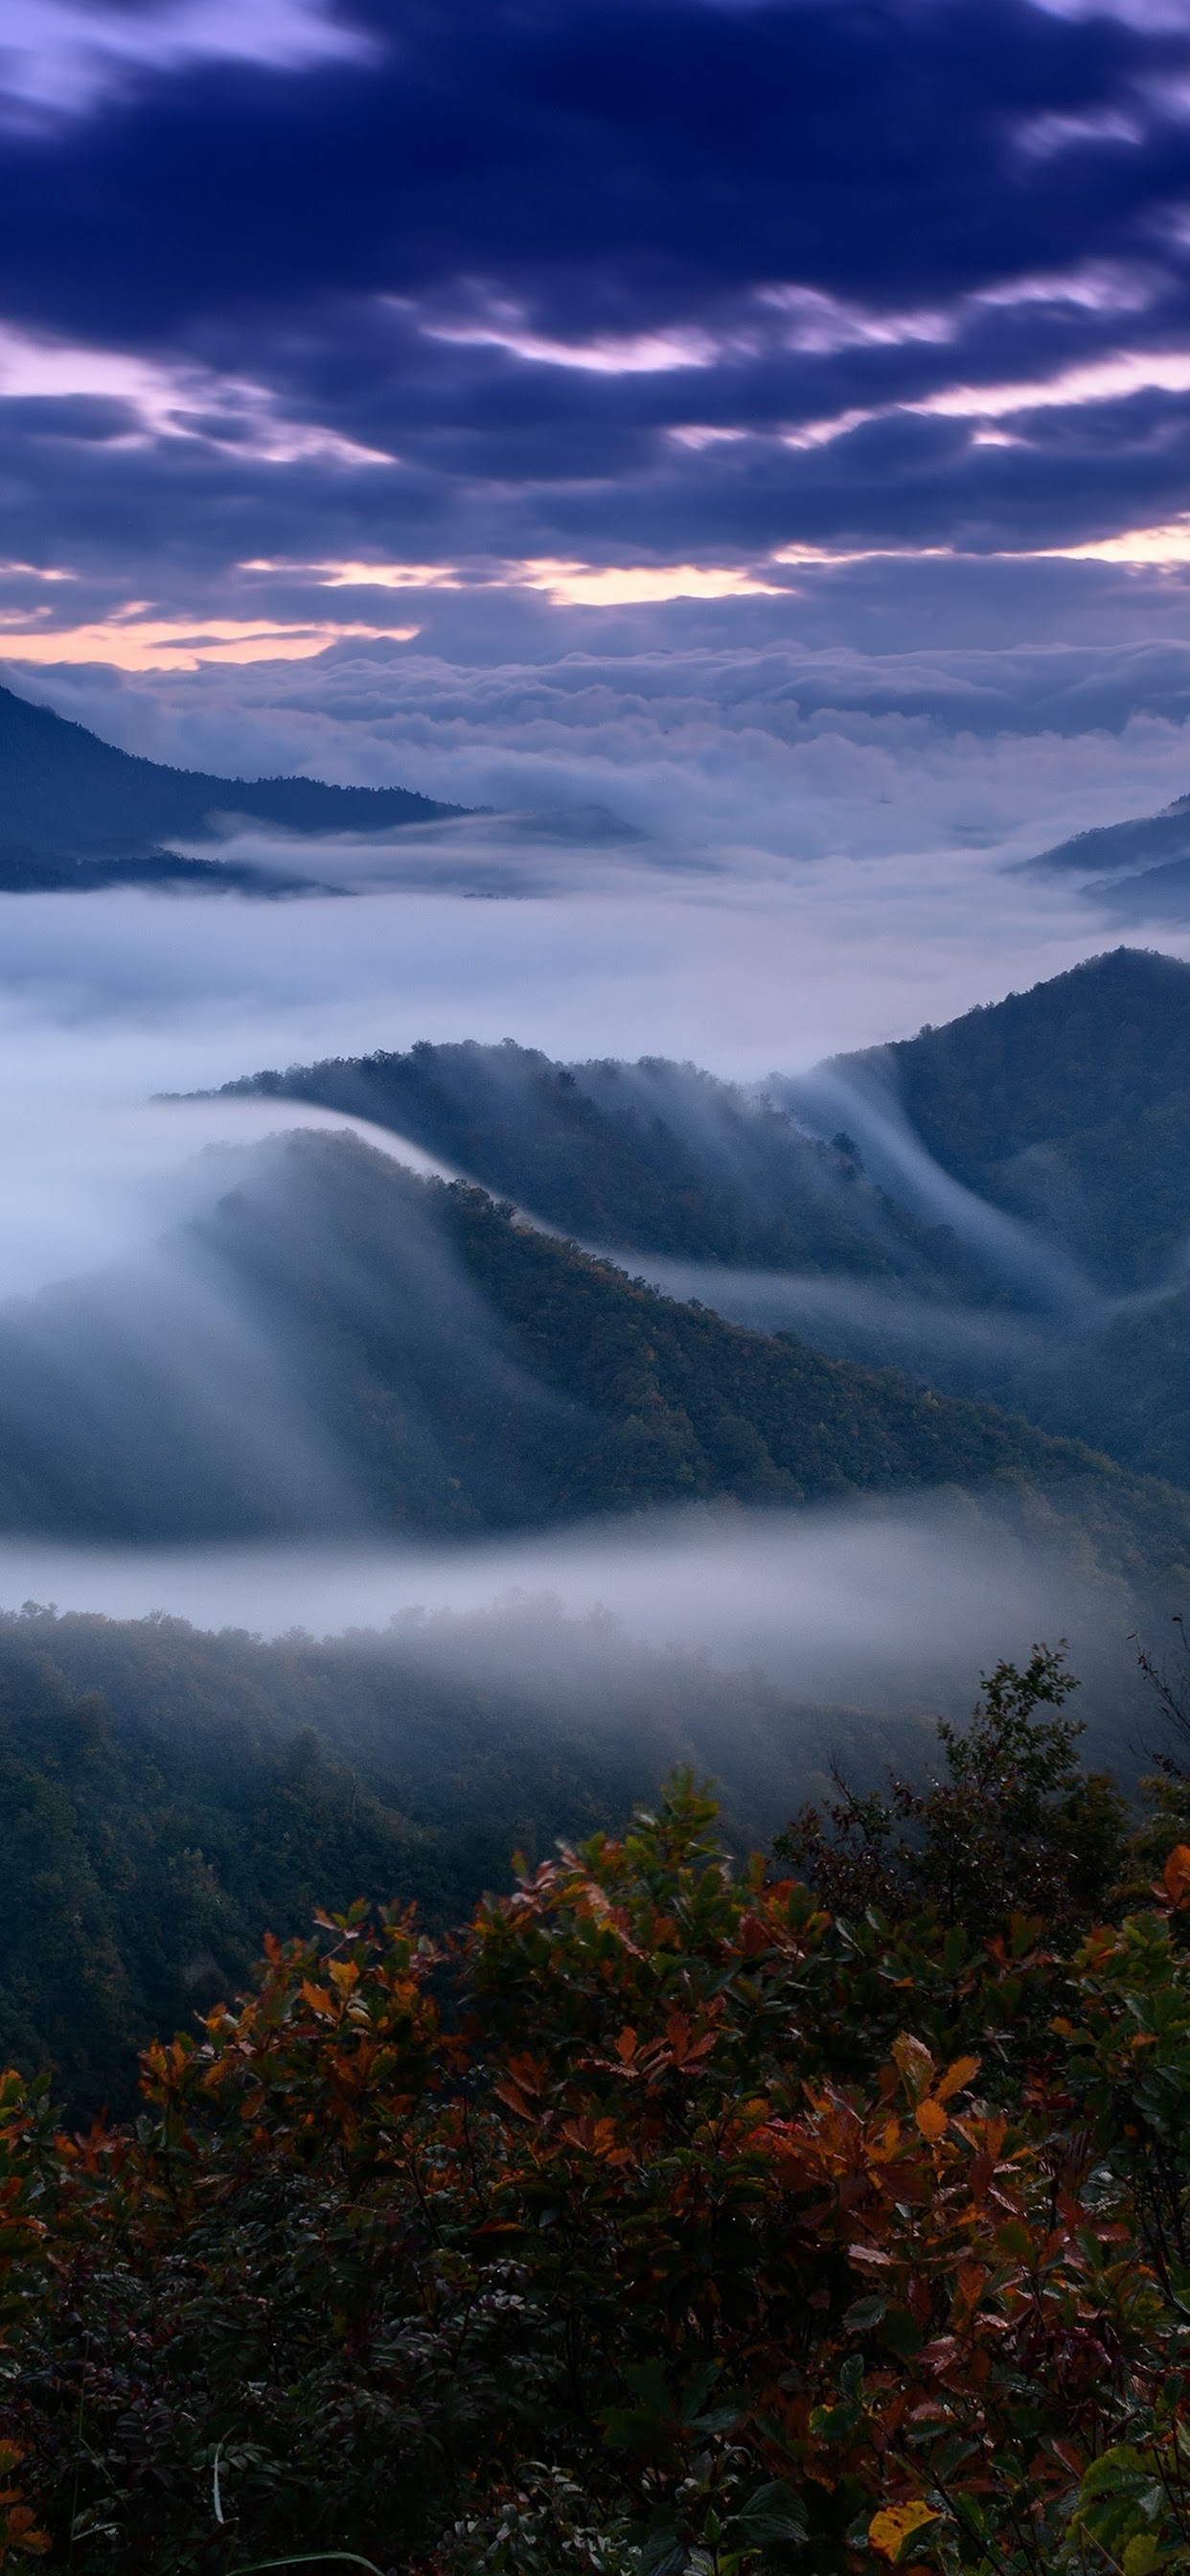 Mountain Fog Scenery Landscape Nature 4k Wallpaper 180